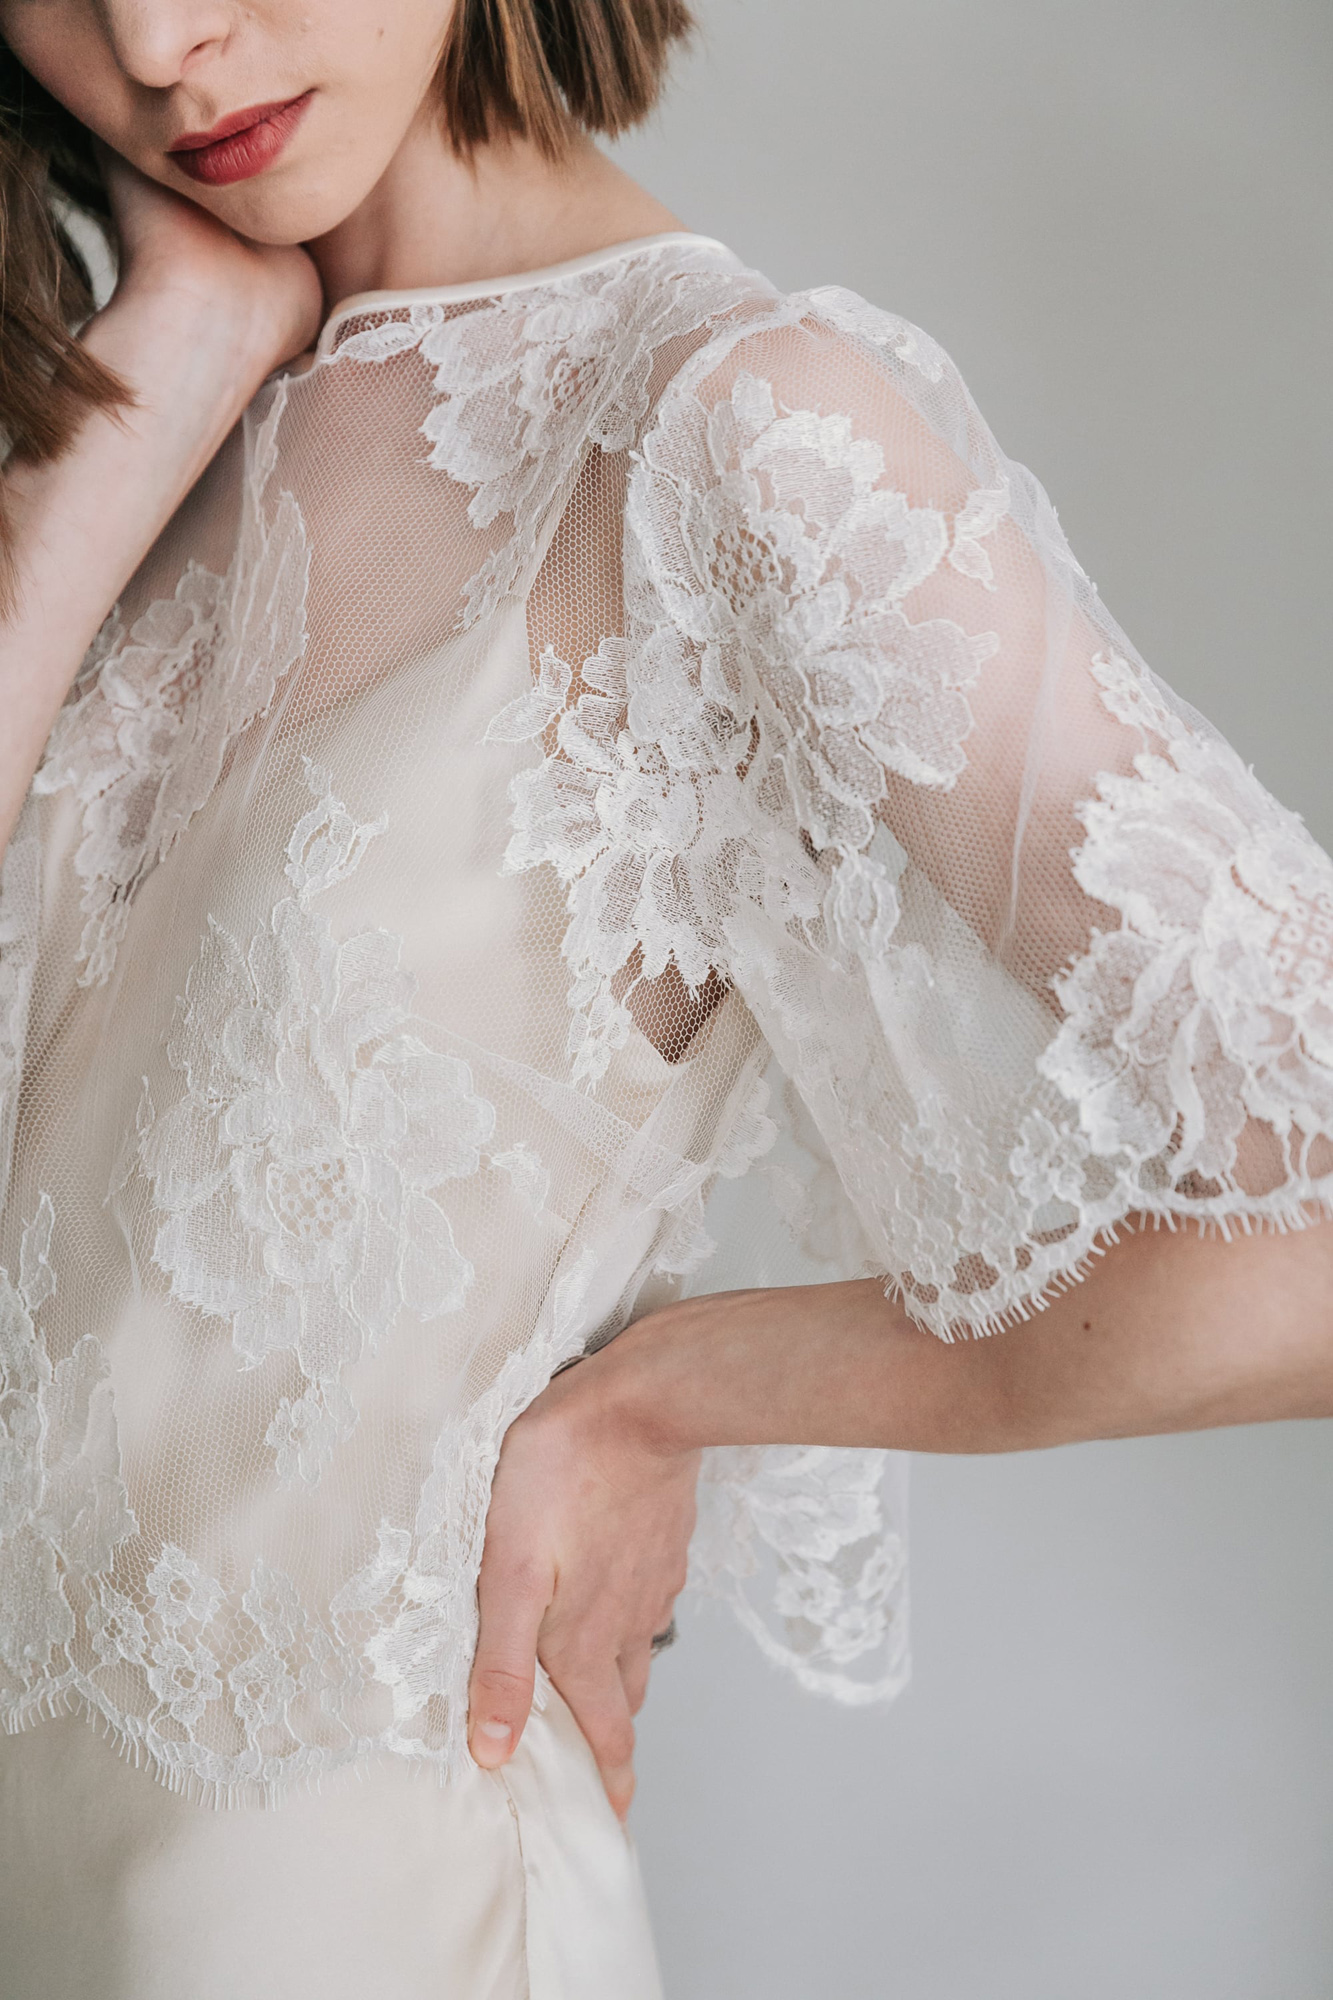 Kate-Beaumont-Sheffield-Rosa-Floral-Lace-Jacket-Thistle-Bias-Cut-Pearl-Silk-Wedding-Gown-1.jpg